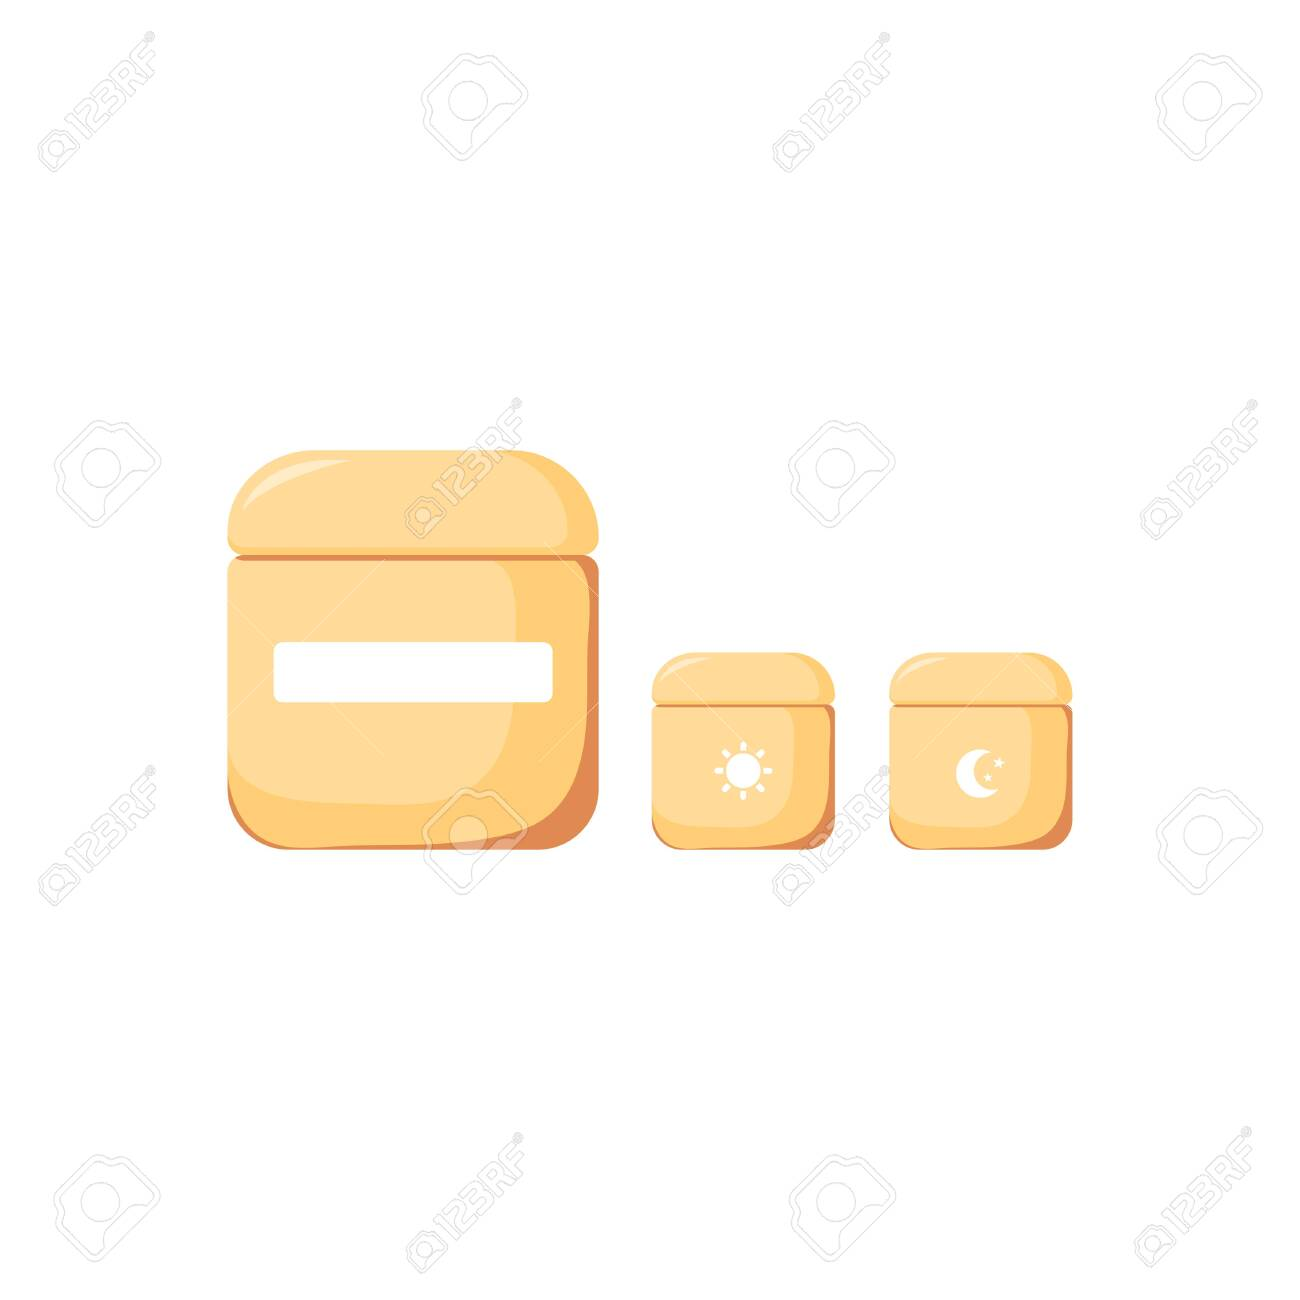 Isolated Night And Daily Cream Cute Skincare Cosmetics Icon Royalty Free Cliparts Vectors And Stock Illustration Image 135372728